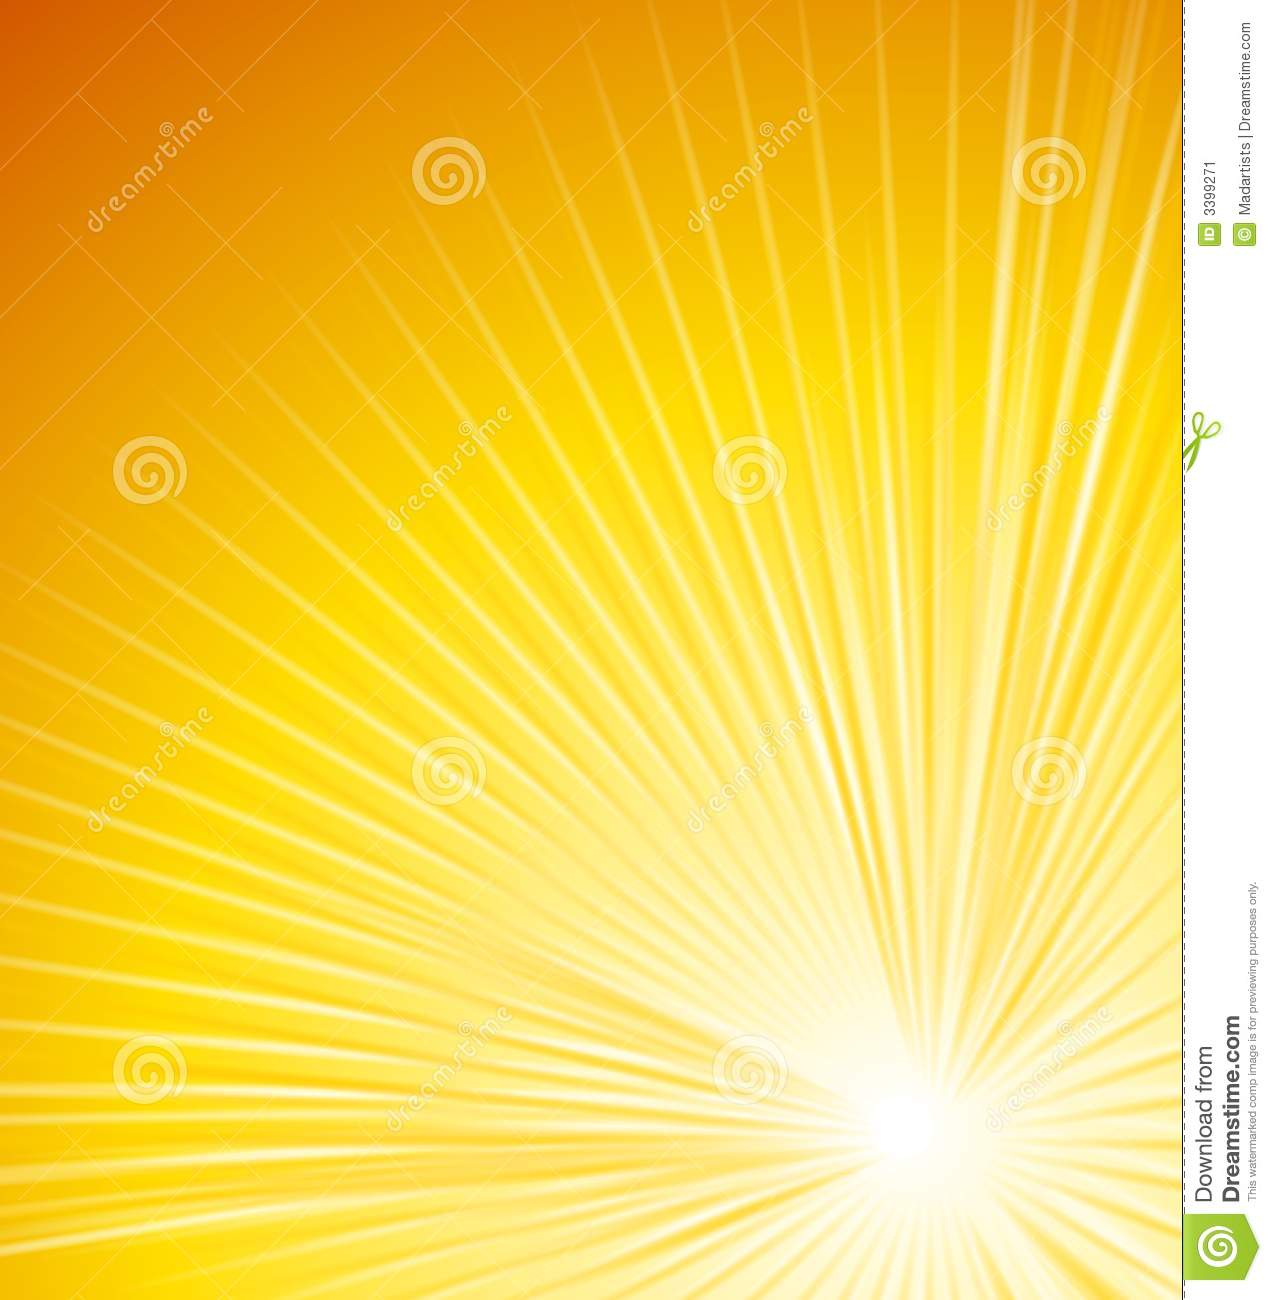 Rays Of Light Glowing Lines 2 Stock Illustration - Image